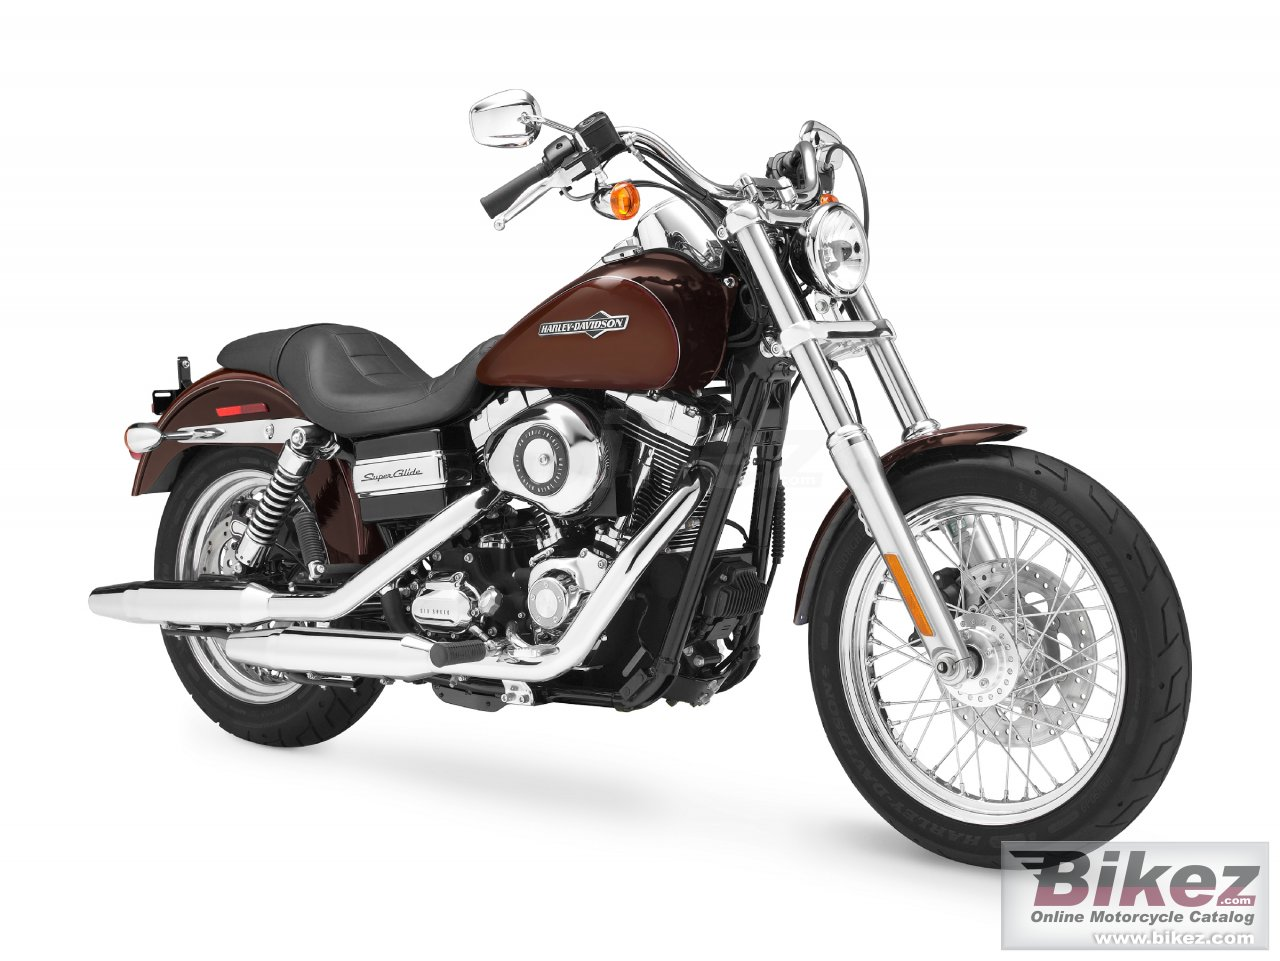 Big Harley-Davidson fxdc dyna super glide custom picture and wallpaper from Bikez.com